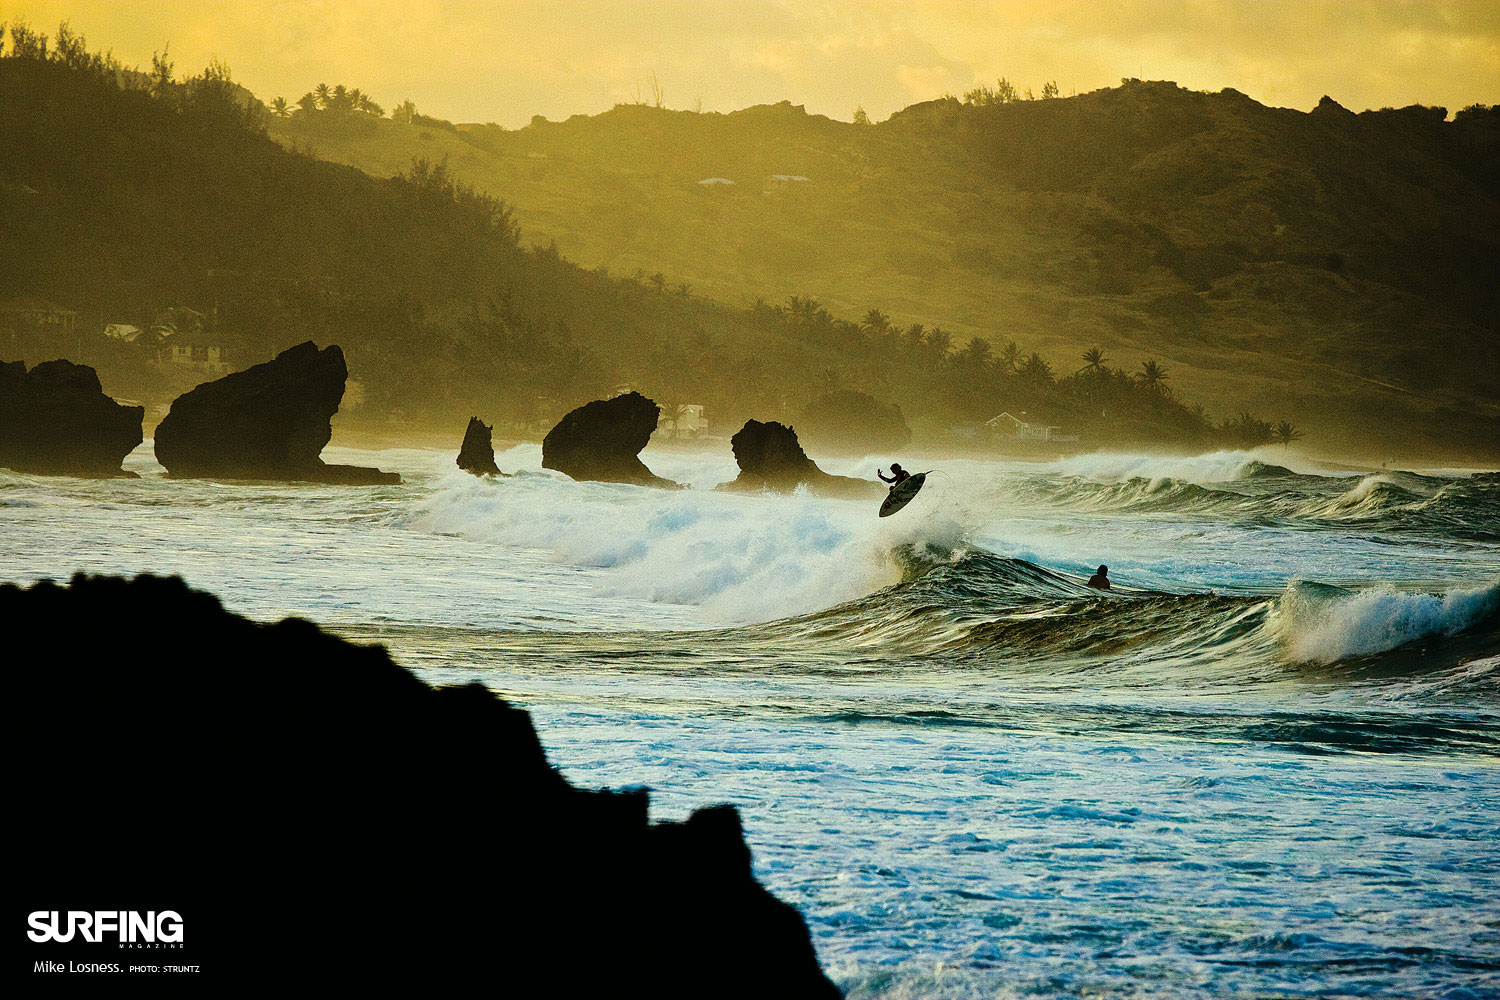 1500x1000 - Surfing Wallpapers 25